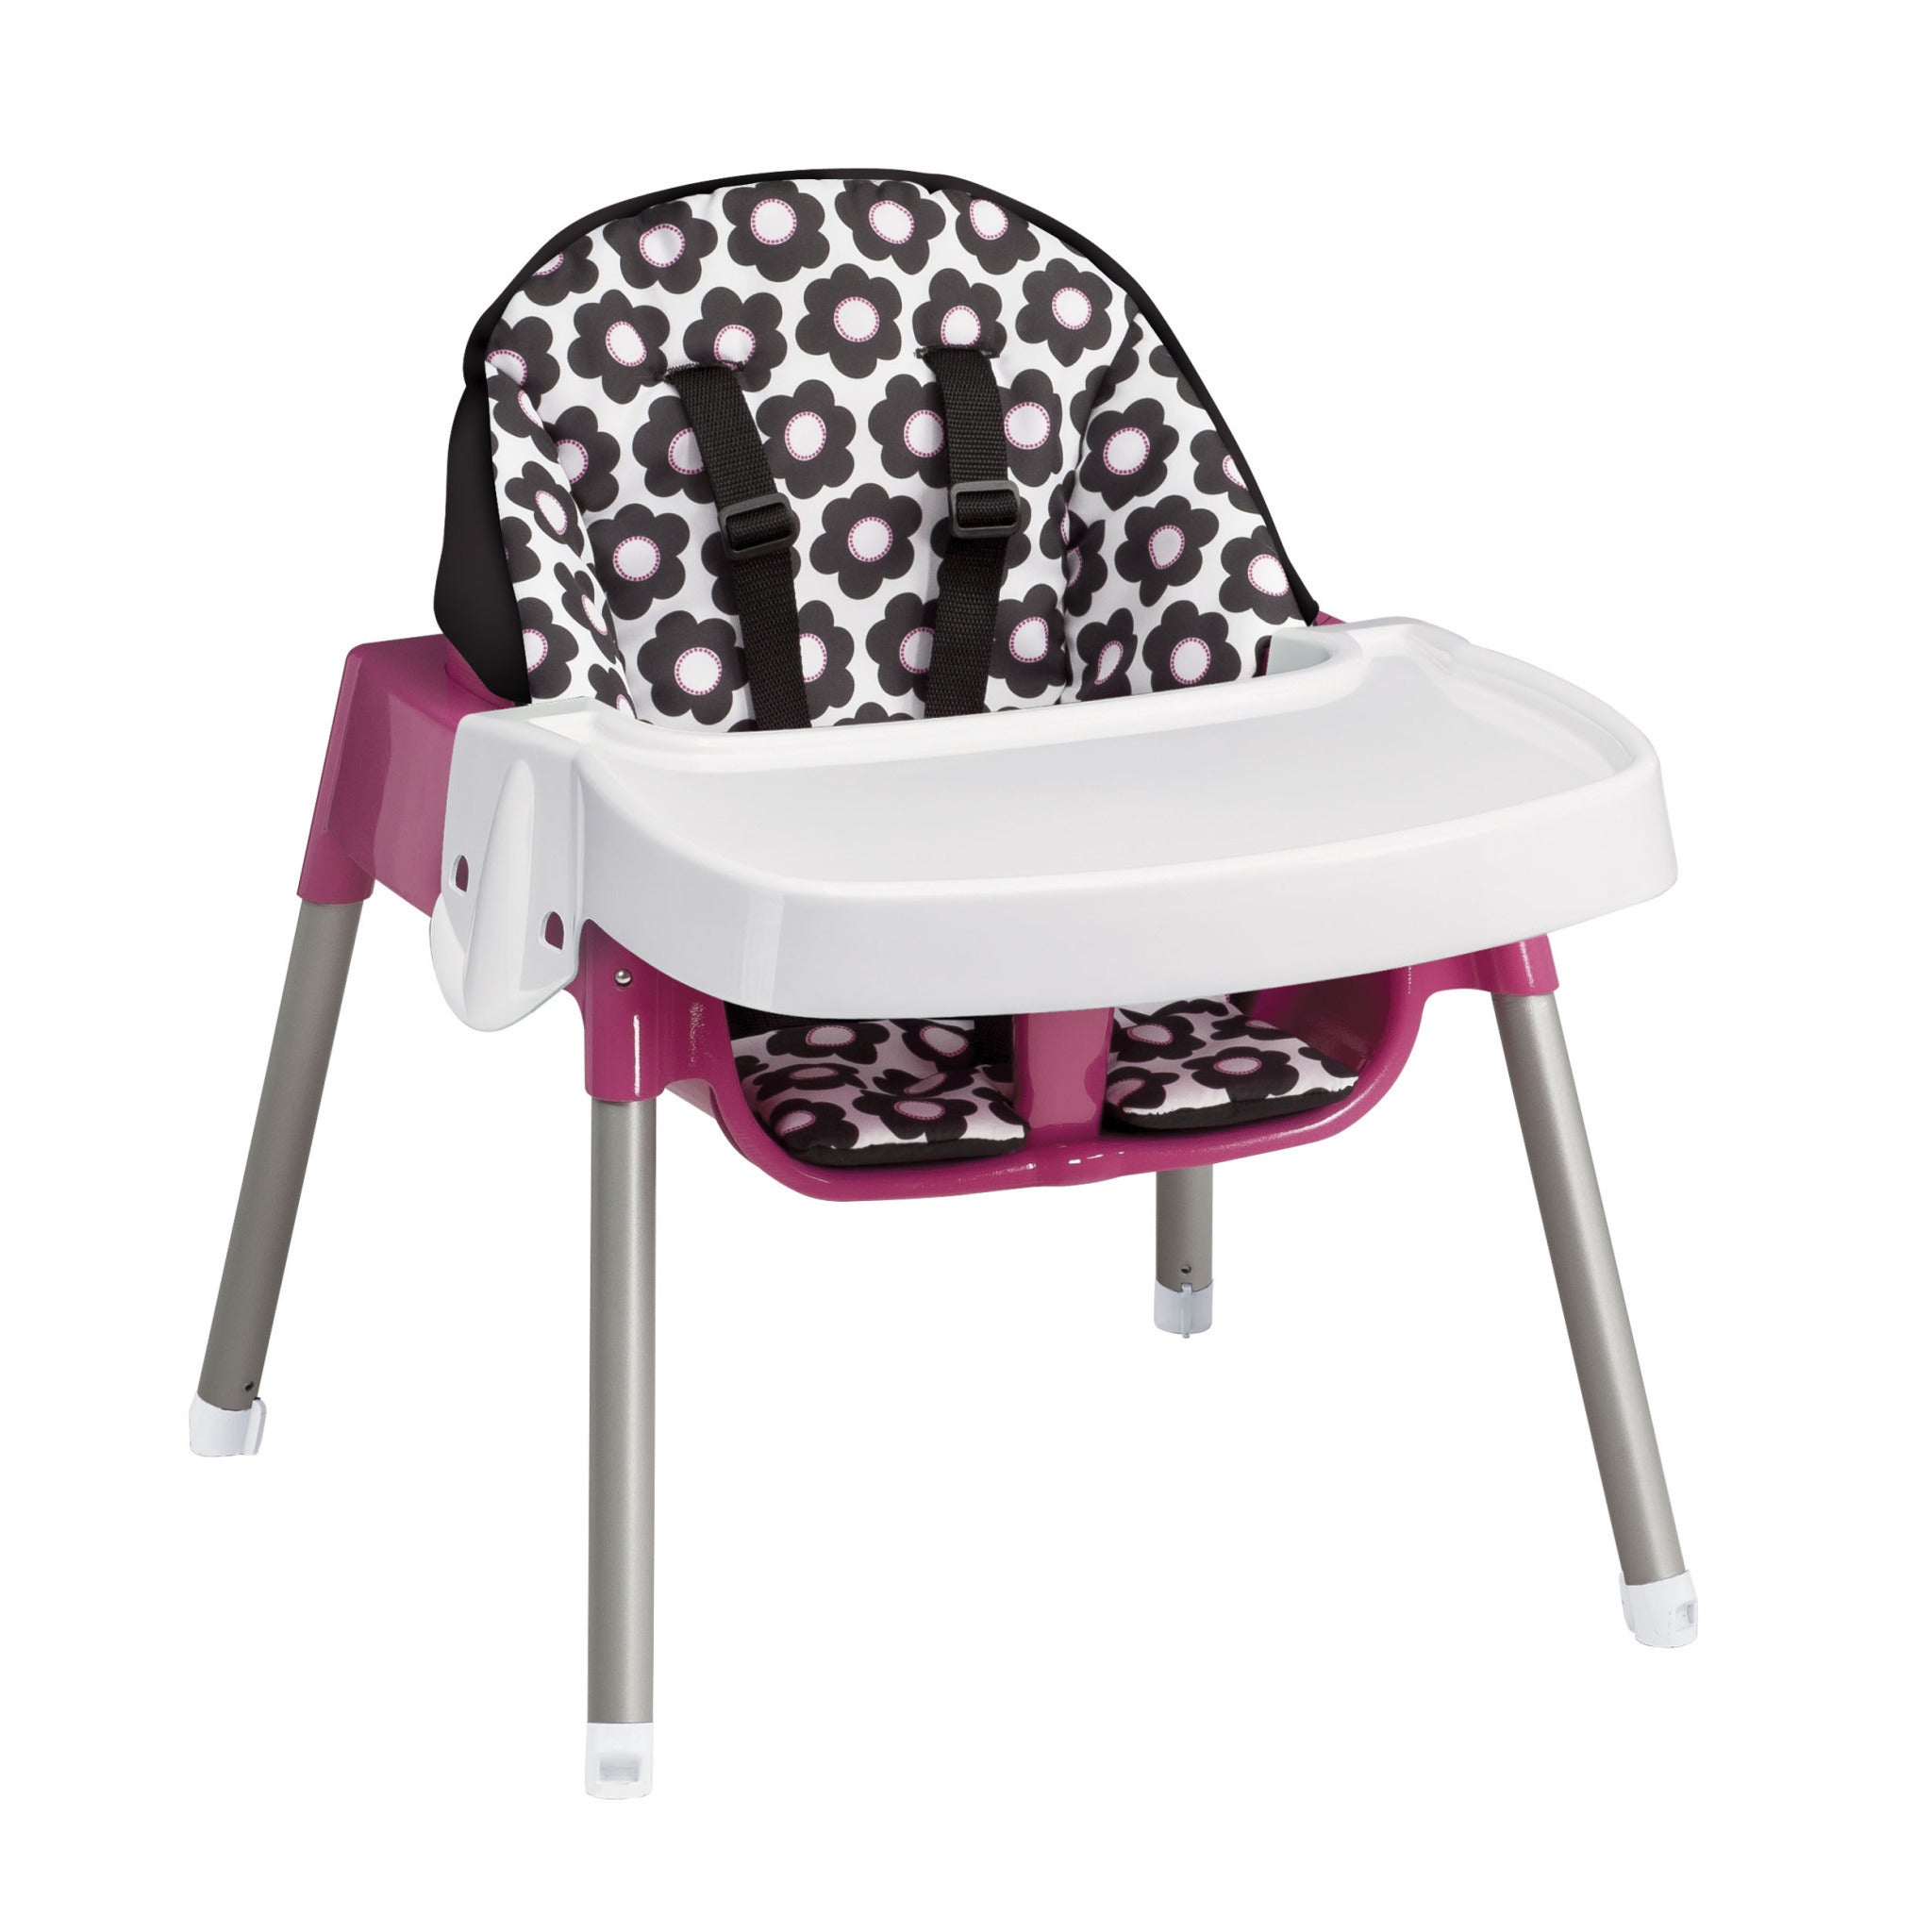 Evenflo Marianna Convertible 3 In 1 High Chair Free Shipping Today 9908193